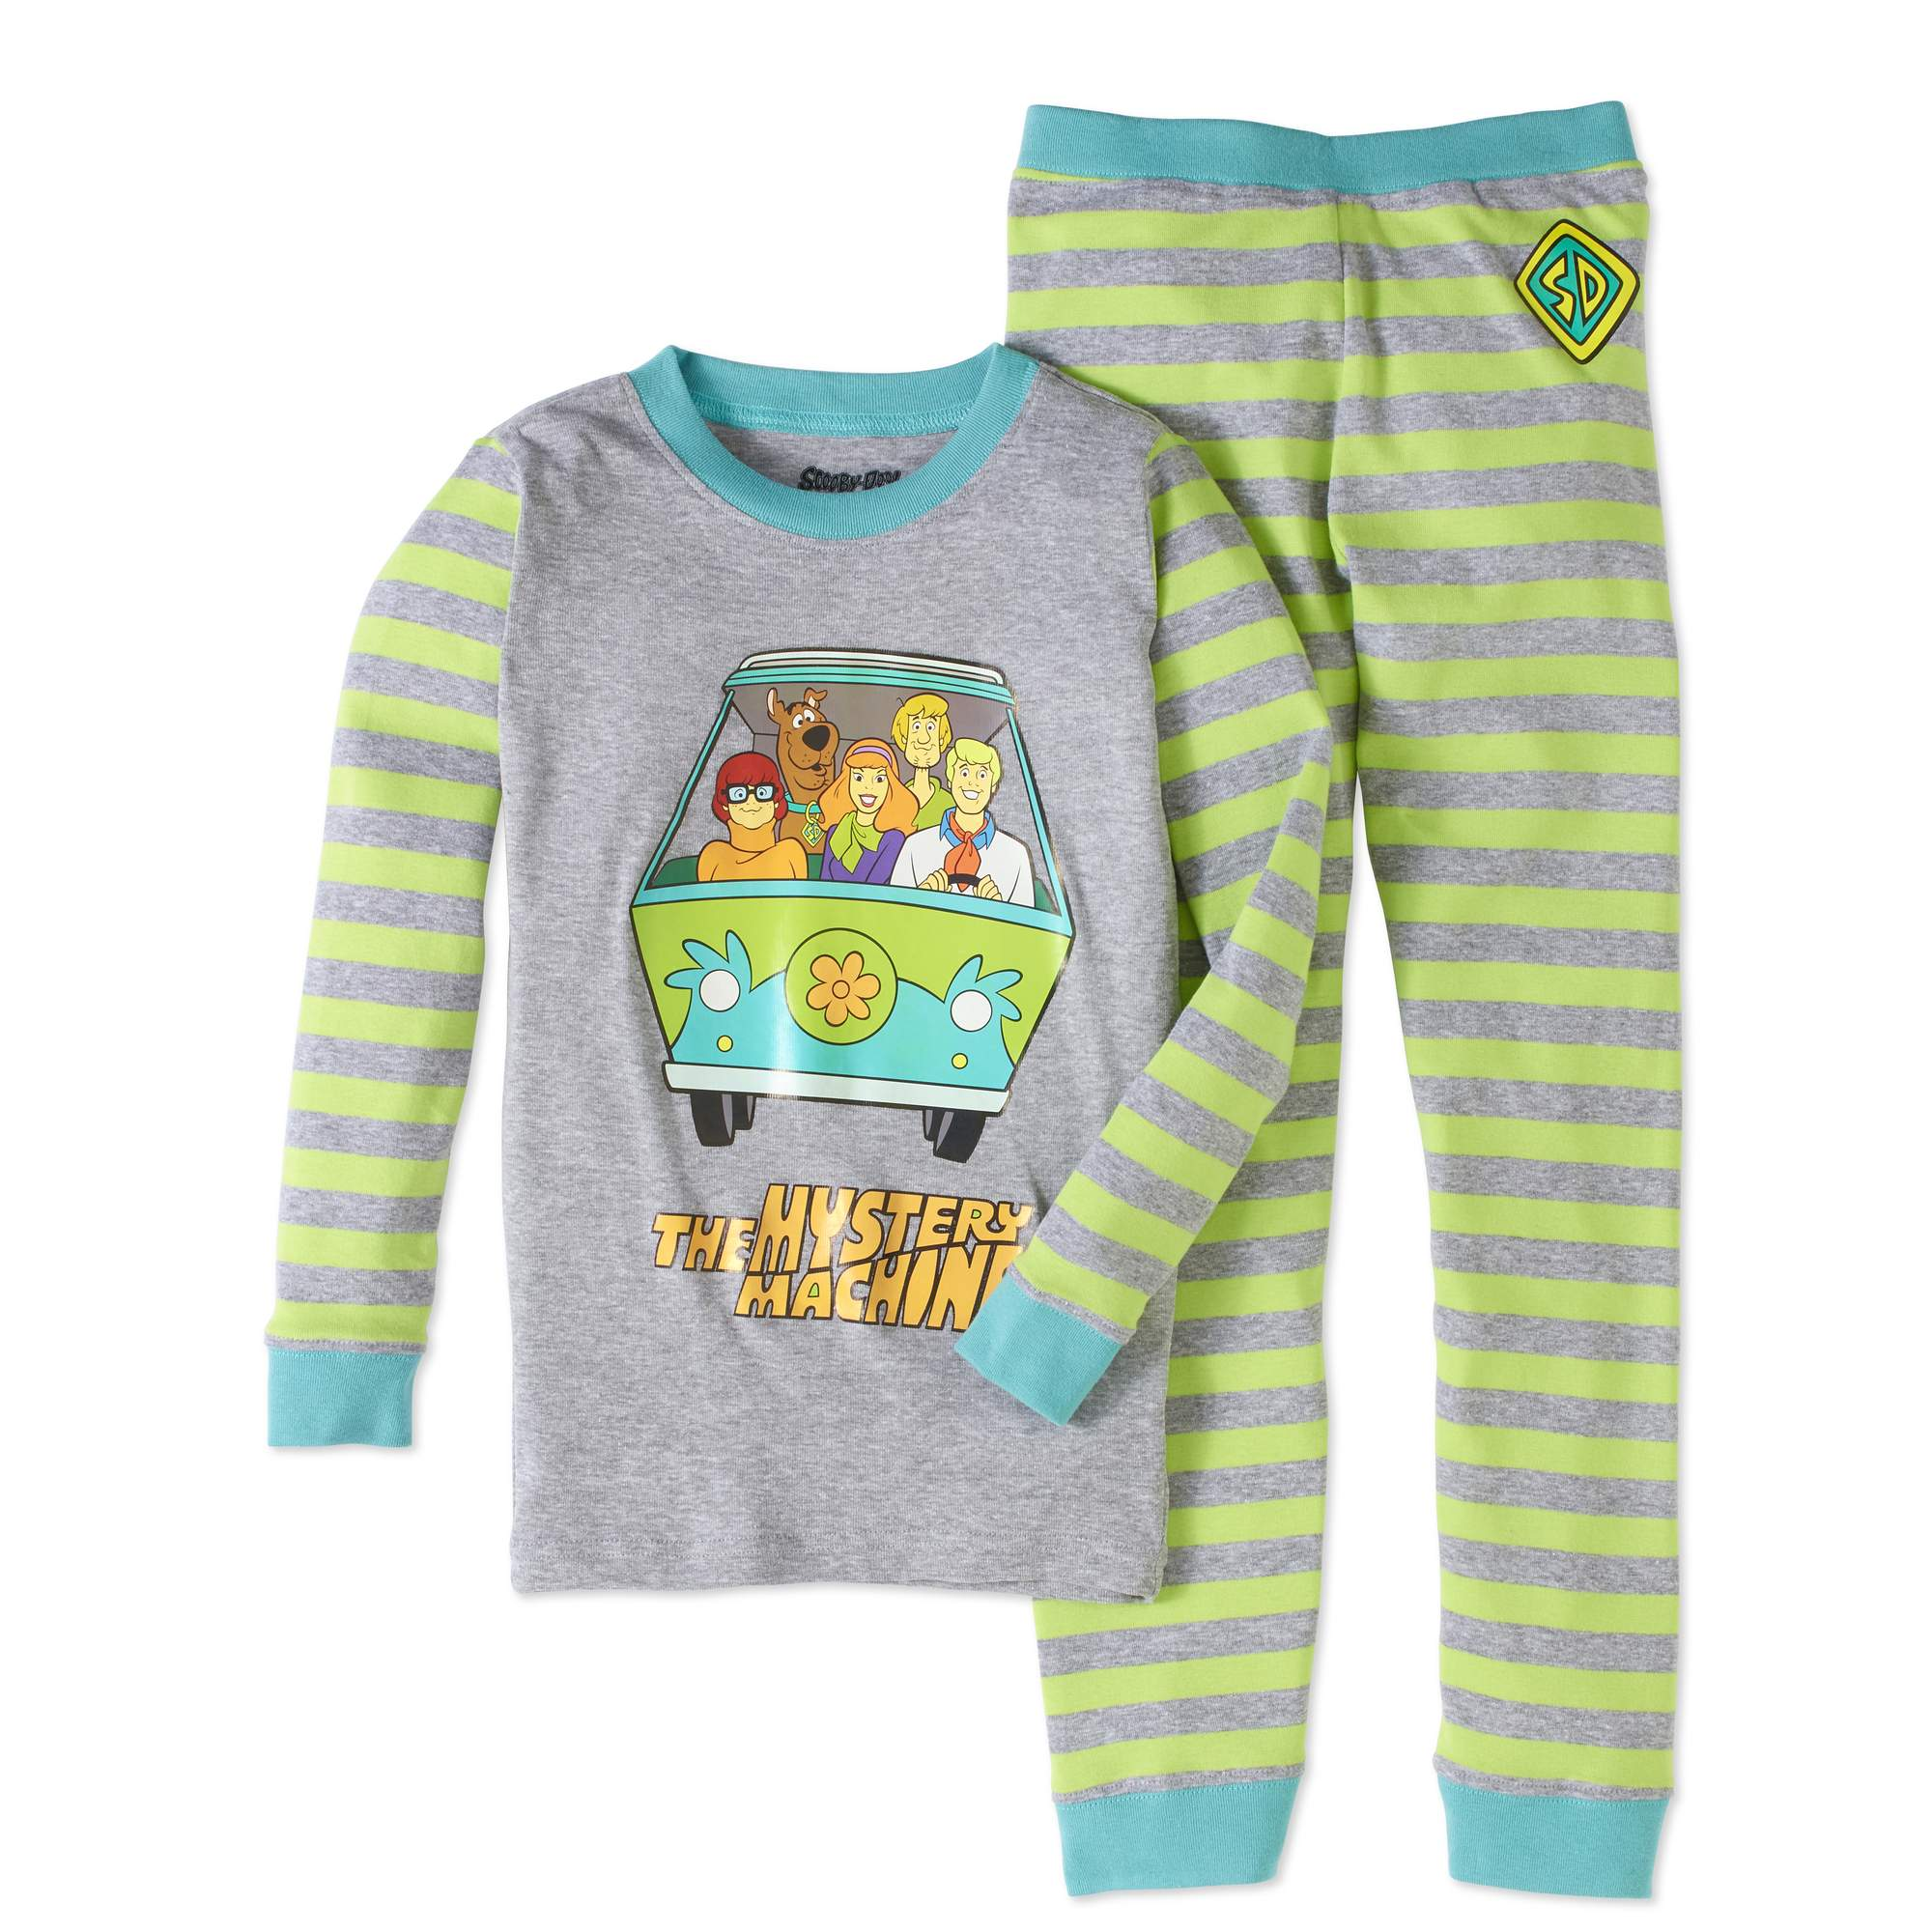 Scooby Doo Boys' Mystery Machine 2 Piece Pajama Sleep Set